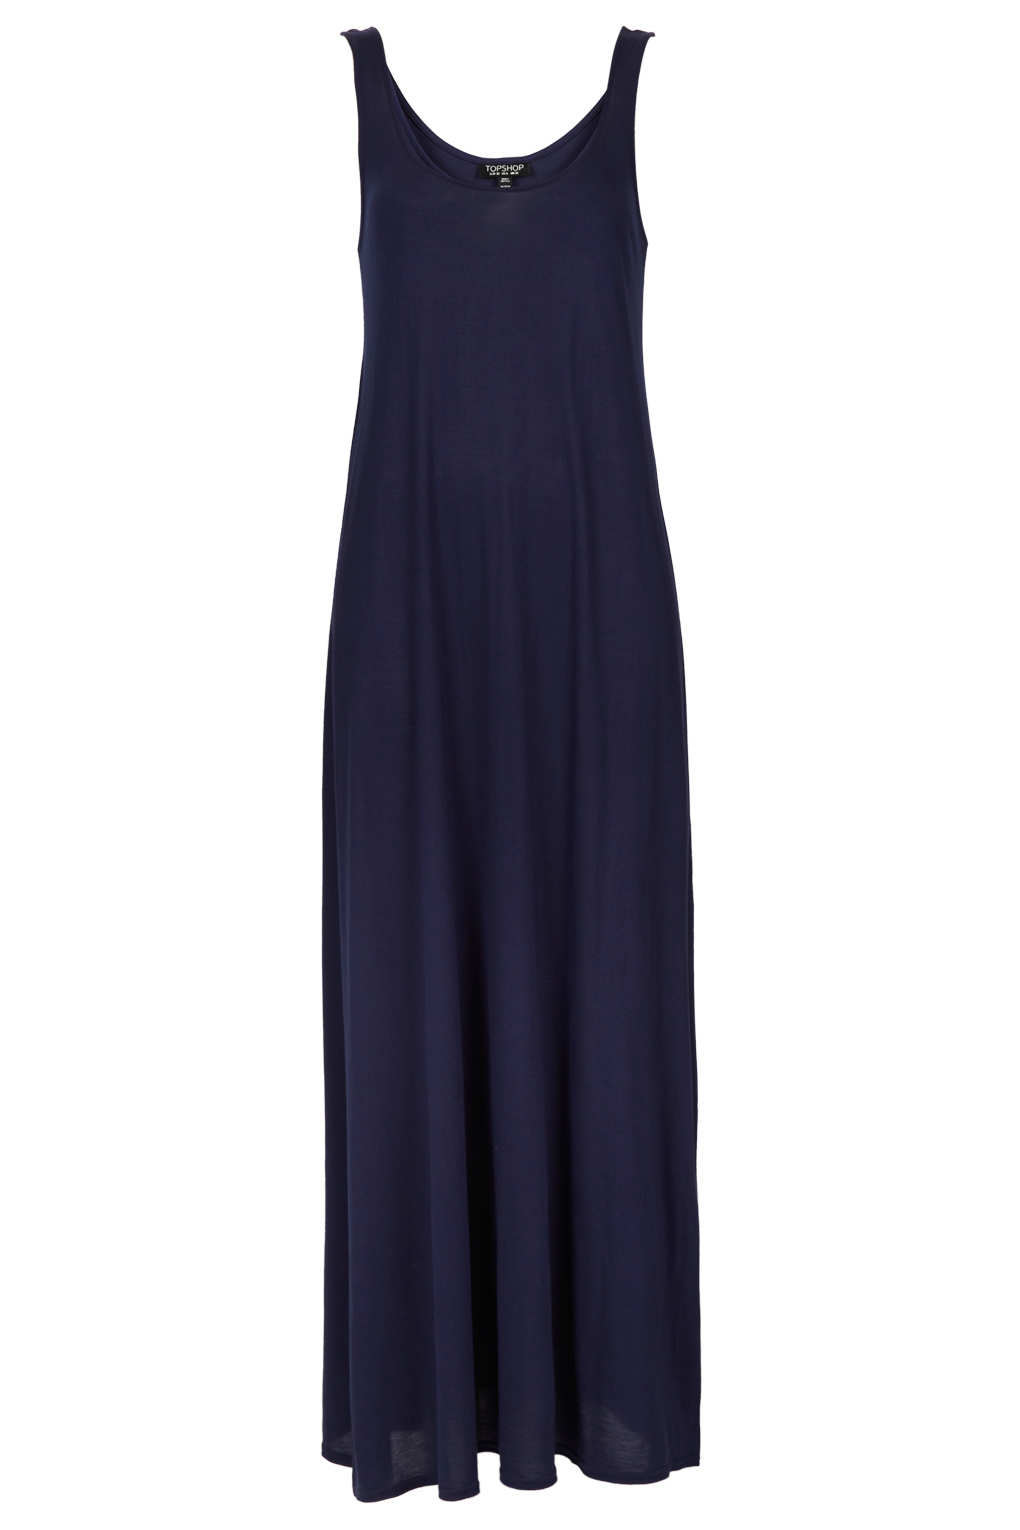 Nordstrom Rack Maxi Dress